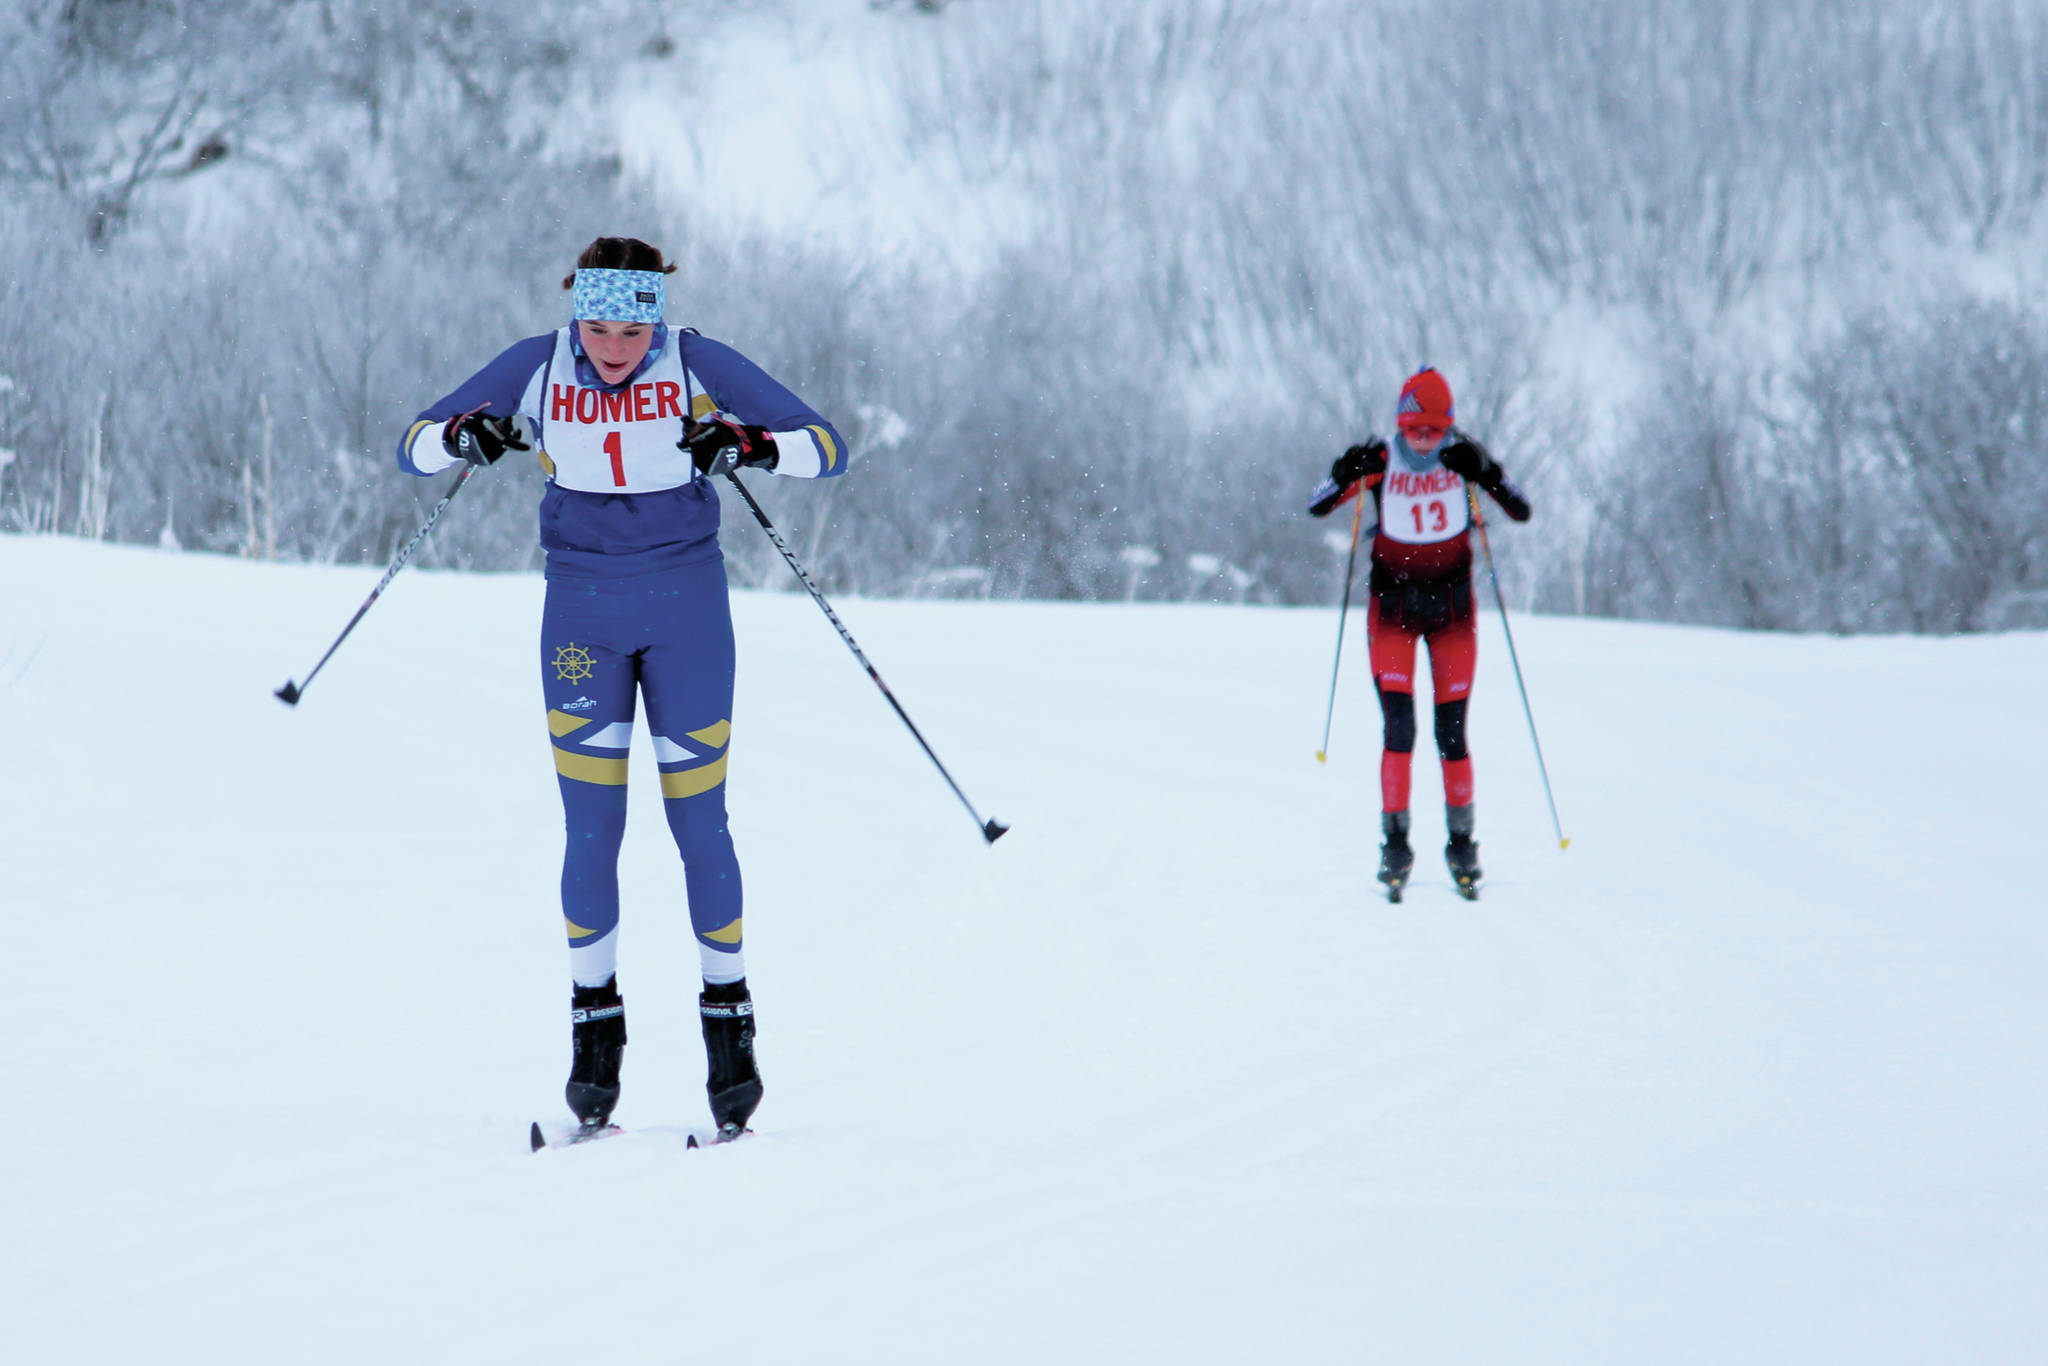 Homer's Autumn Daigle skis to the finish of a Friday, Jan. 31, 2020 classic ski race ahead of Kenai's Jayna Boonstra during the Homer Invite at the Lookout Mountain Trails on Ohlson Mountain Road near Homer, Alaska. (Photo by Megan Pacer/Homer News)